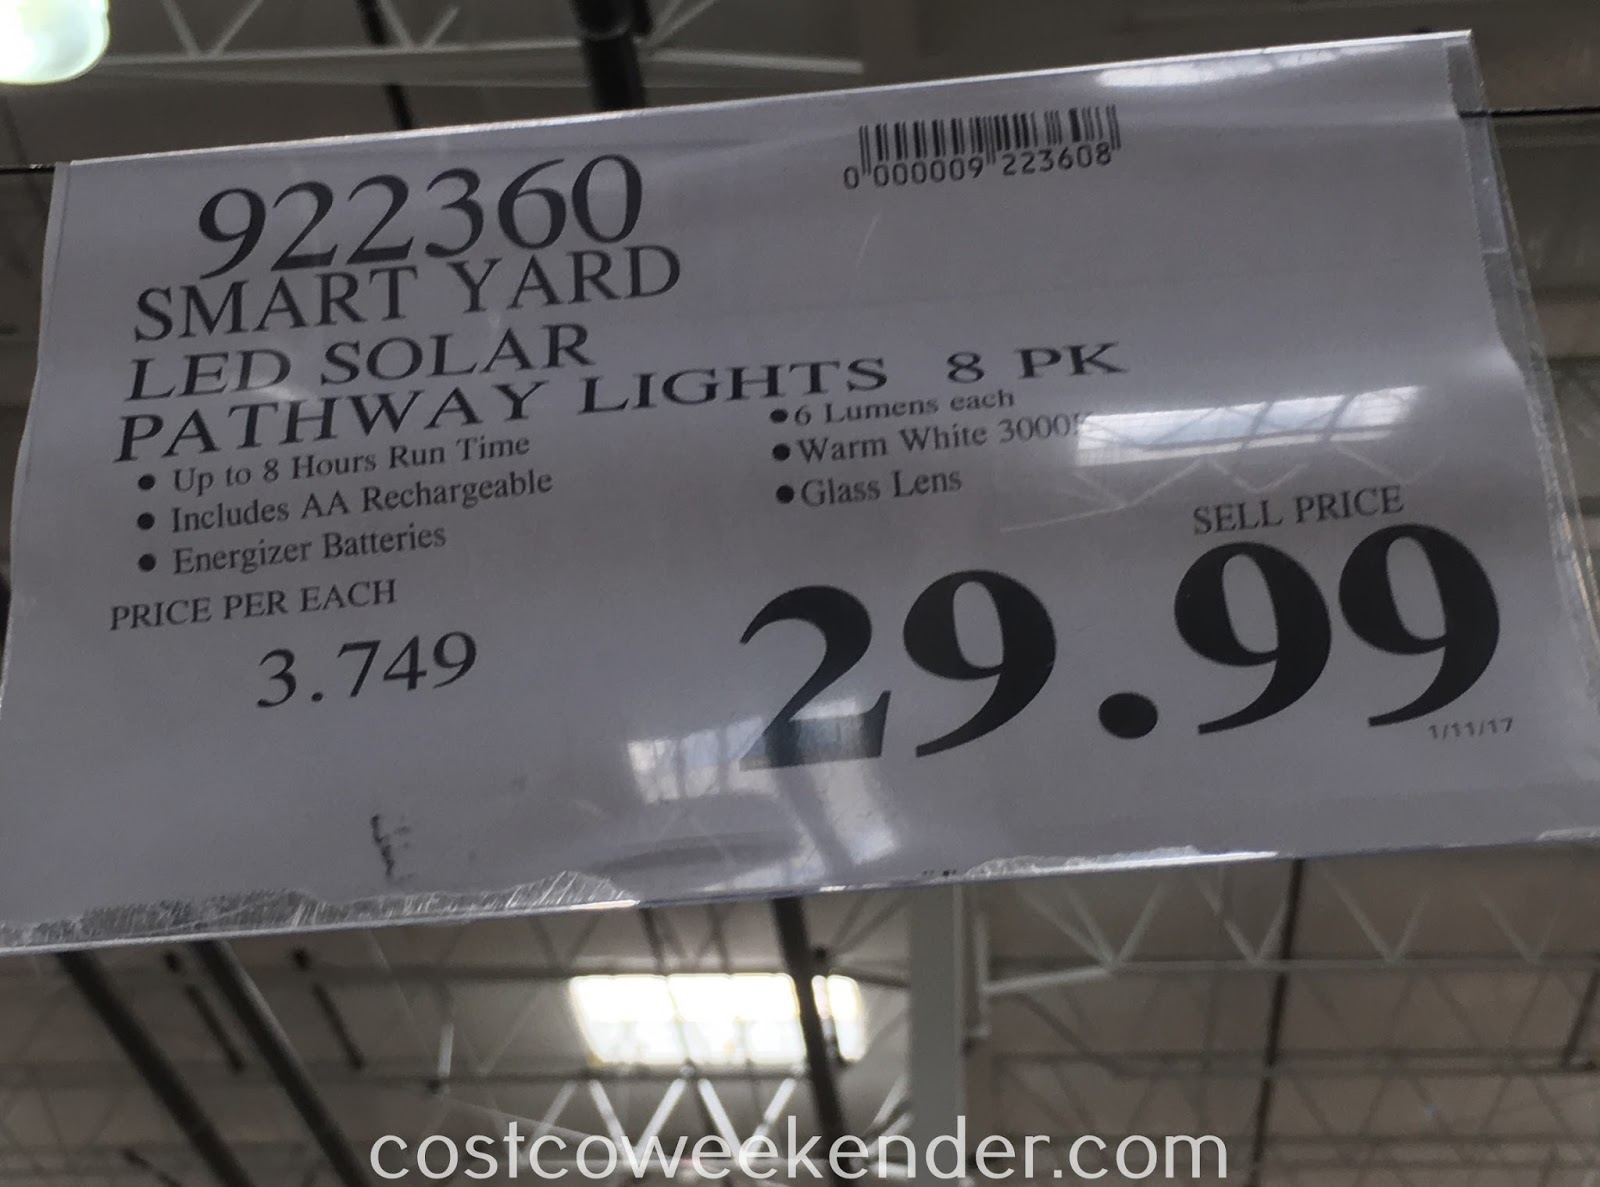 Deal for an 8 pack of SmartYard LED Solar Pathway Lights at Costco